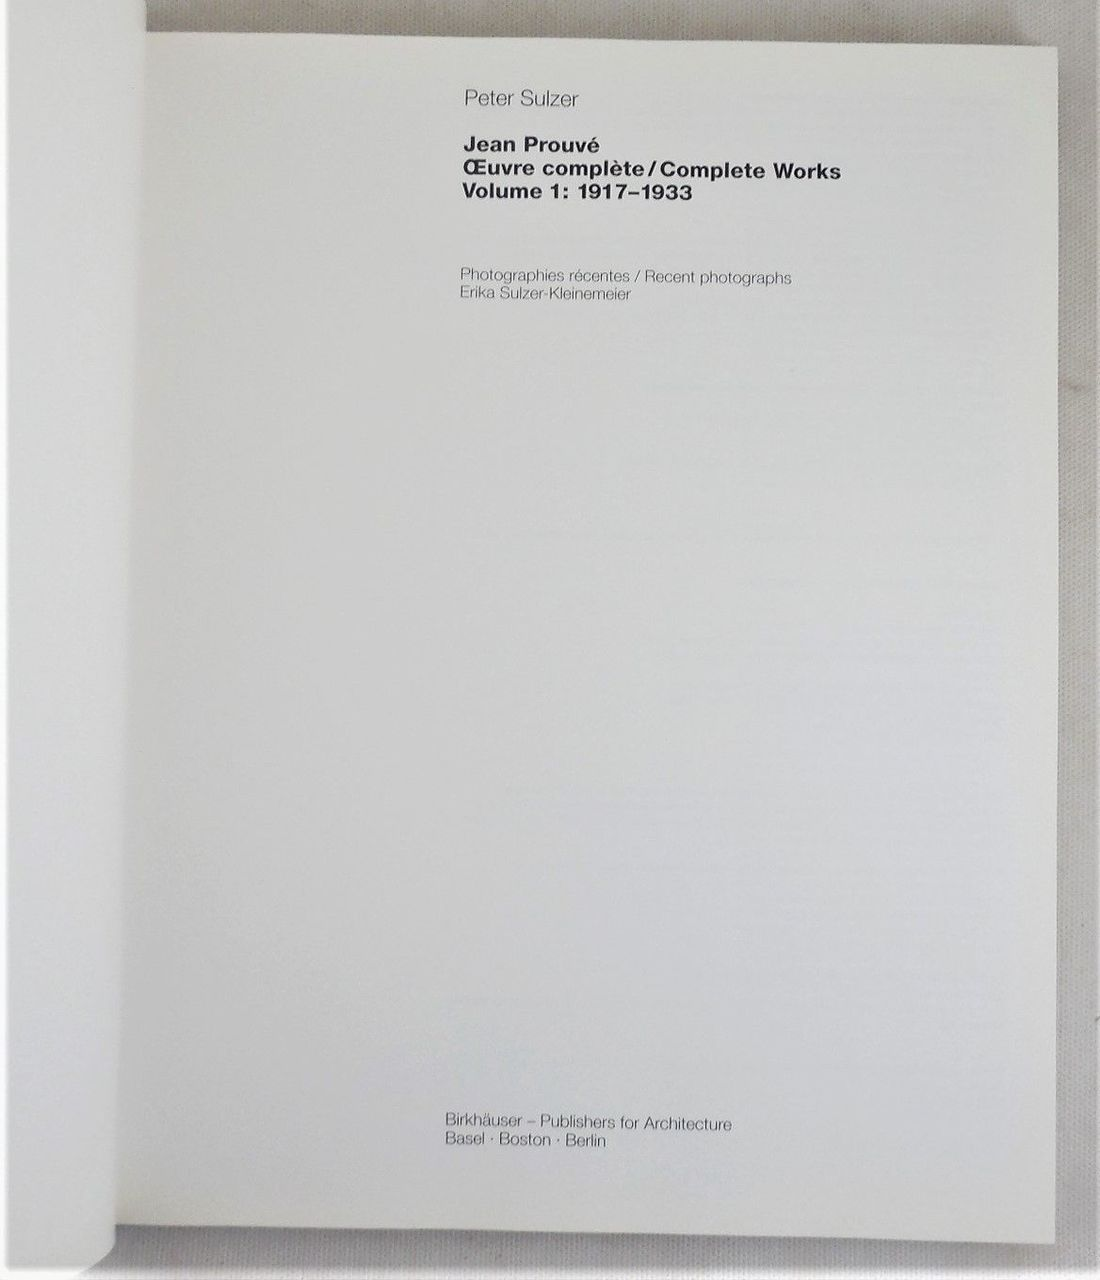 JEAN PROUVE: COMPLETE WORKS, by Peter Sulzer - 1999 [2 vols]